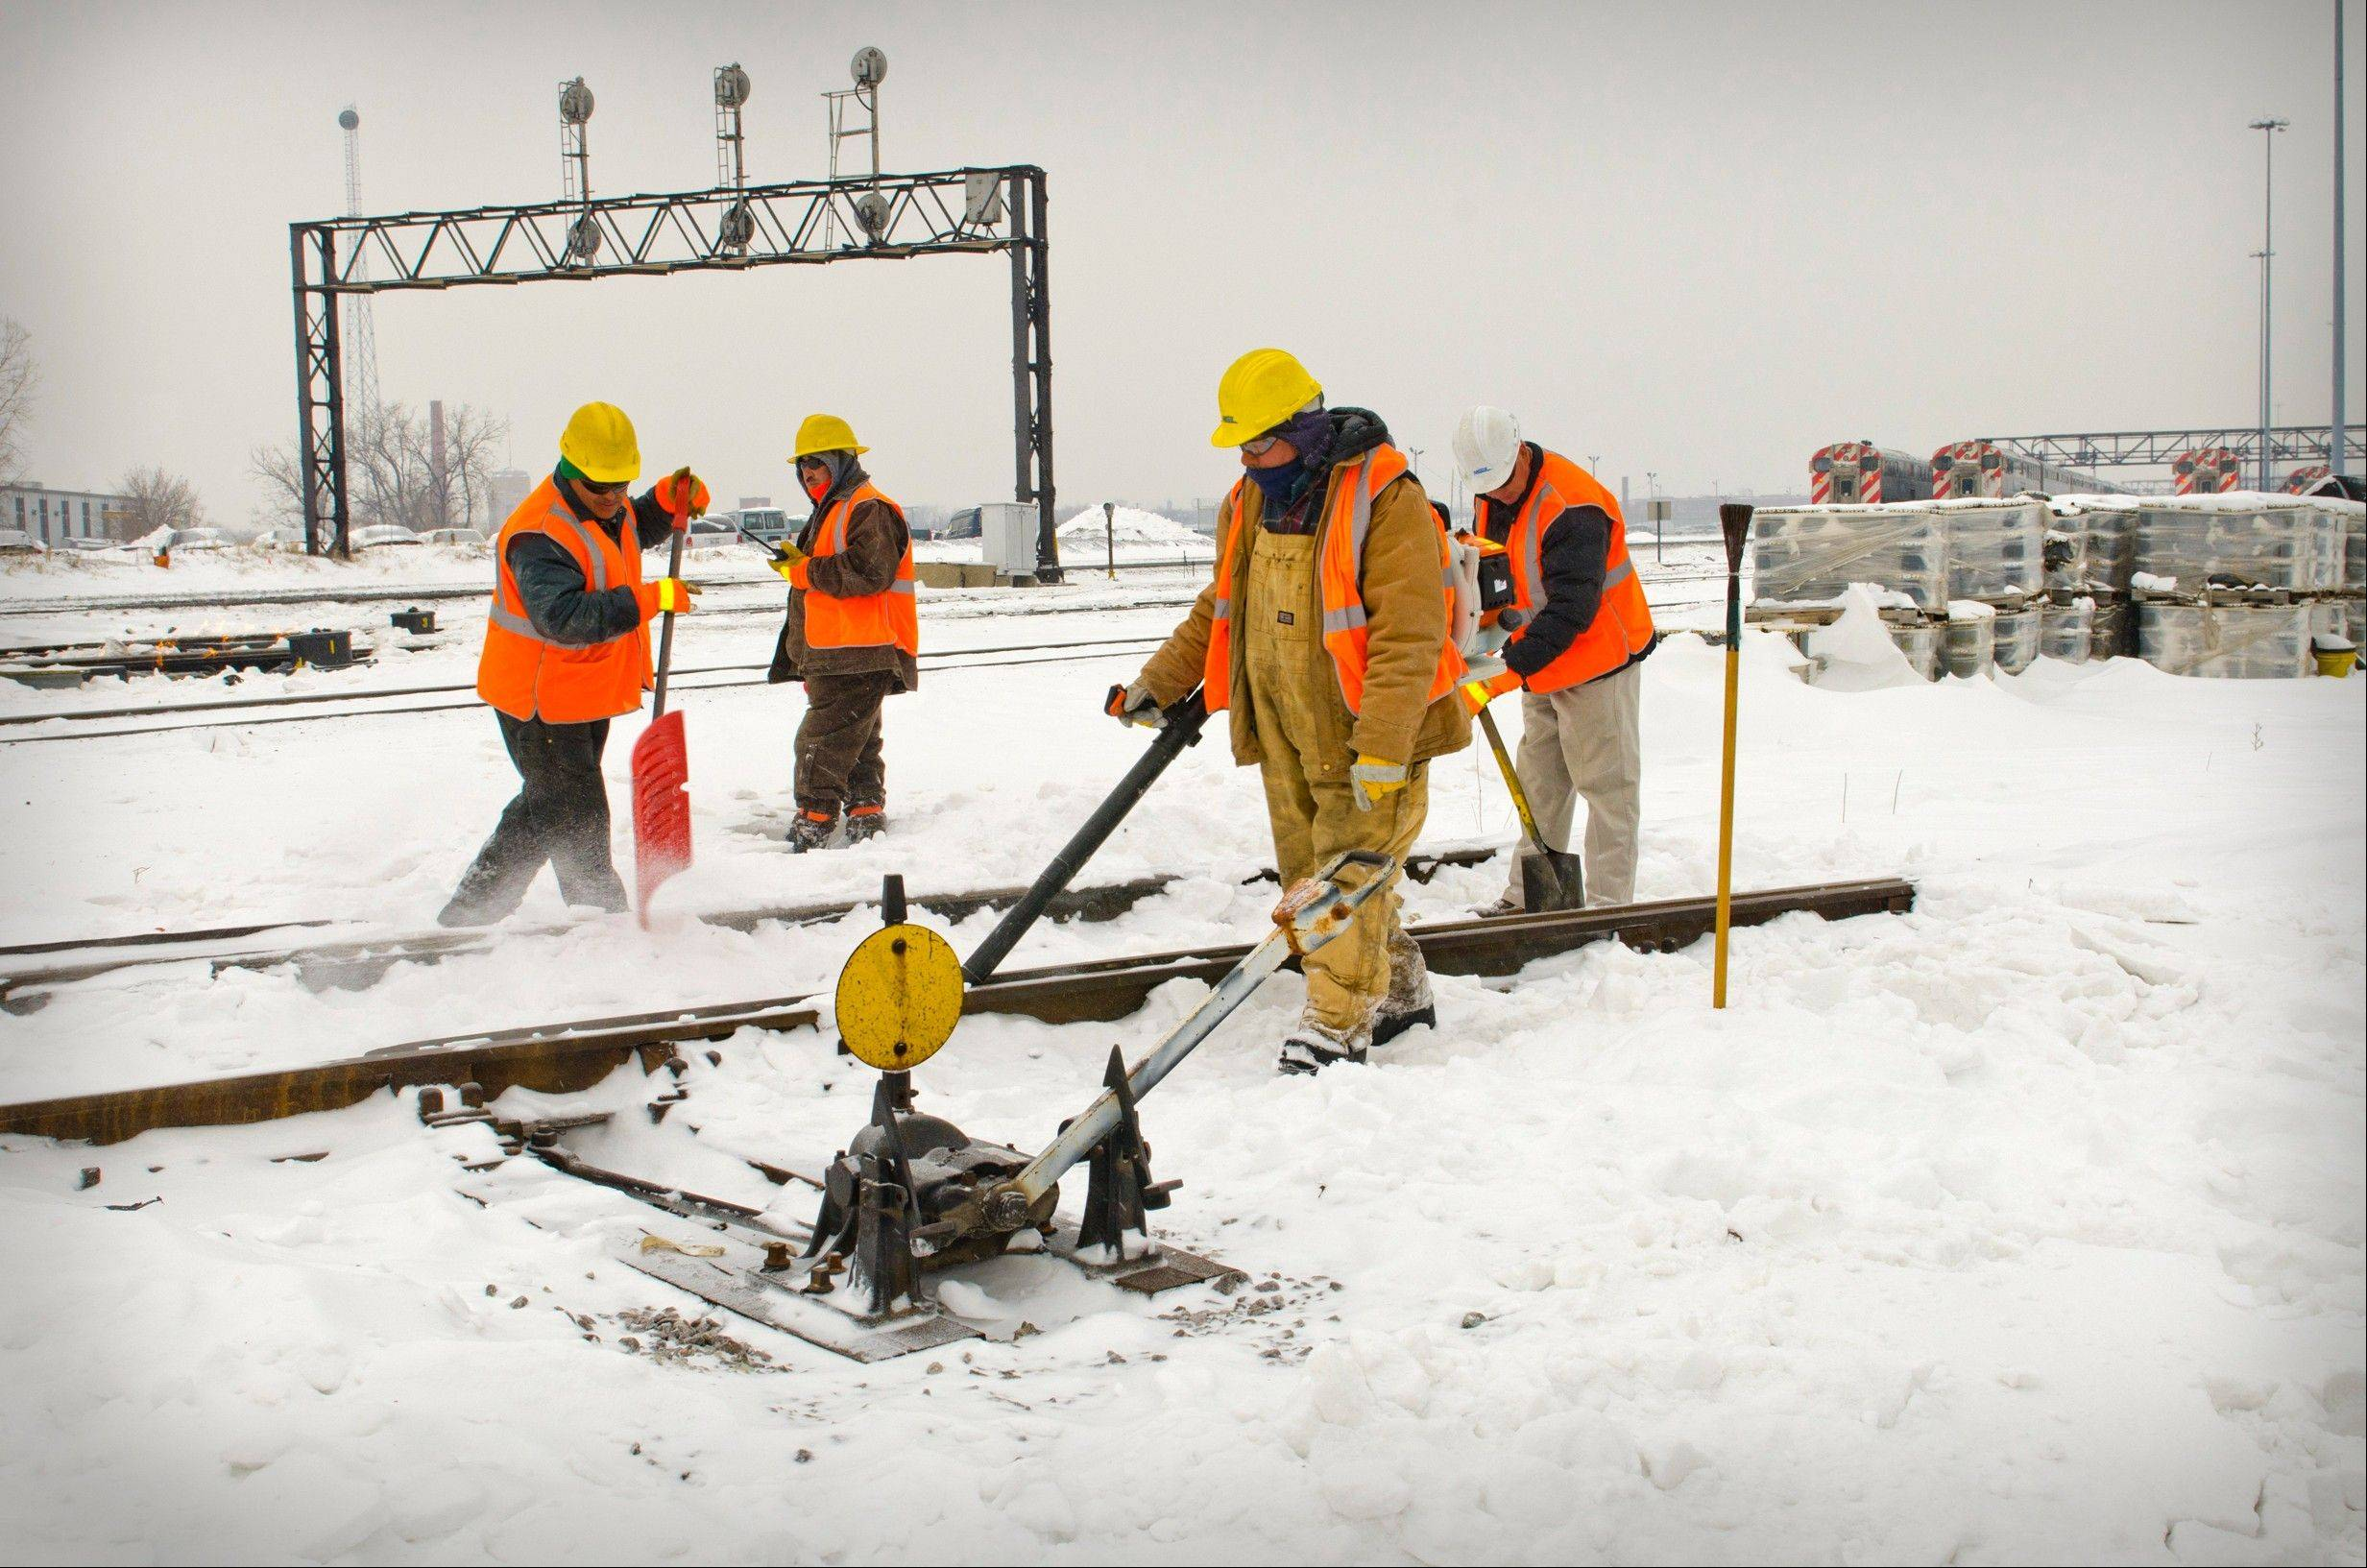 Photo by Ron Wojkovich, courtesy of MetraMetra crews get rid of ice and snow on a signal Thursday.